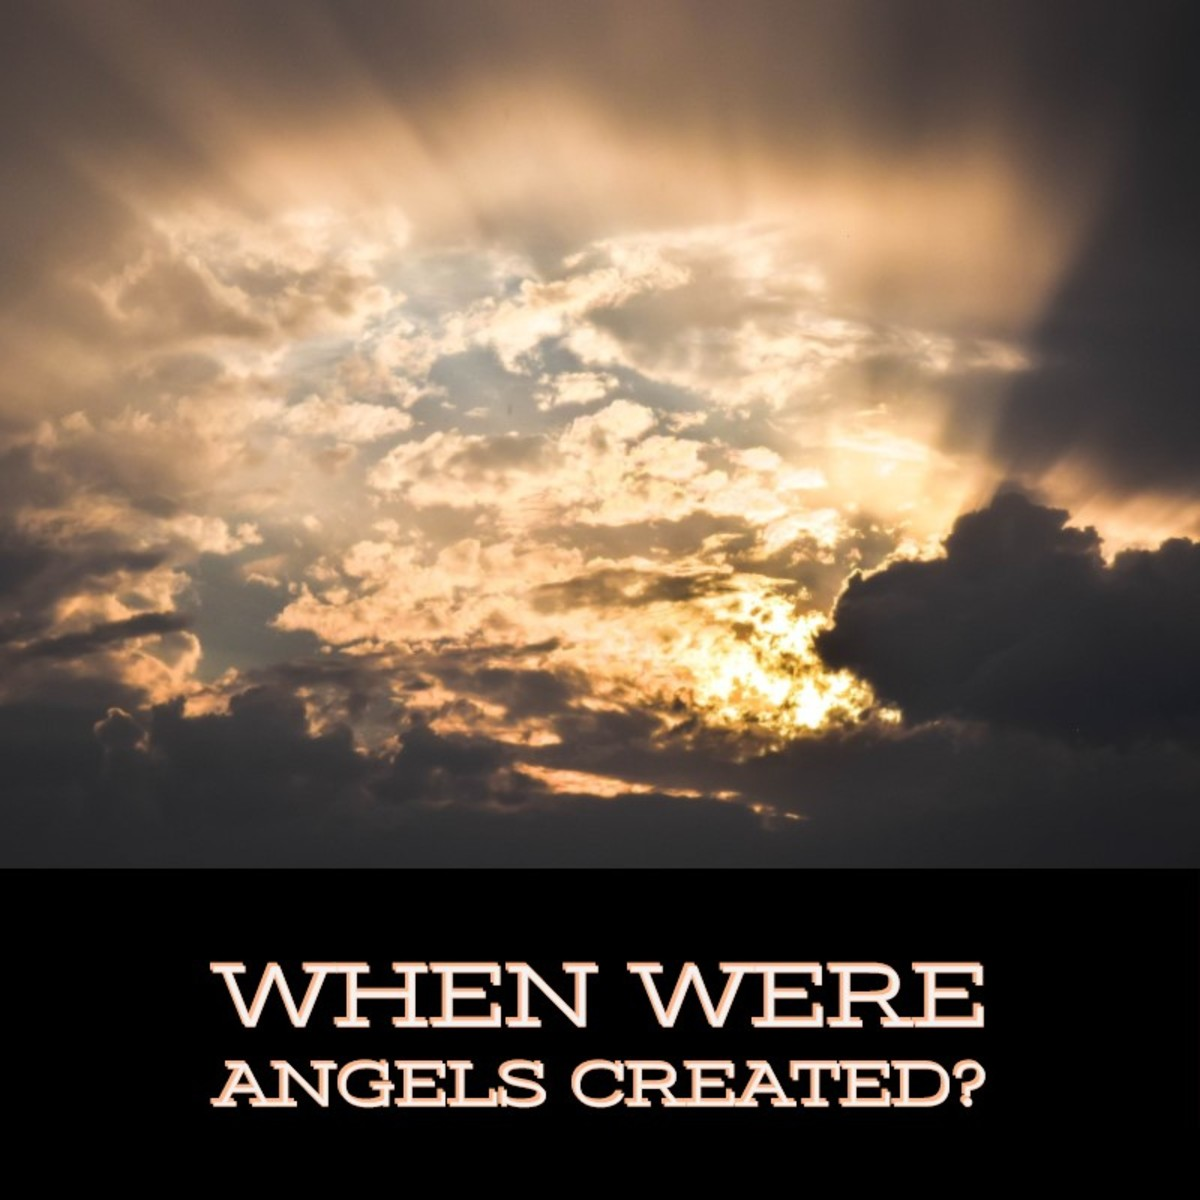 When were the Angels created by God?